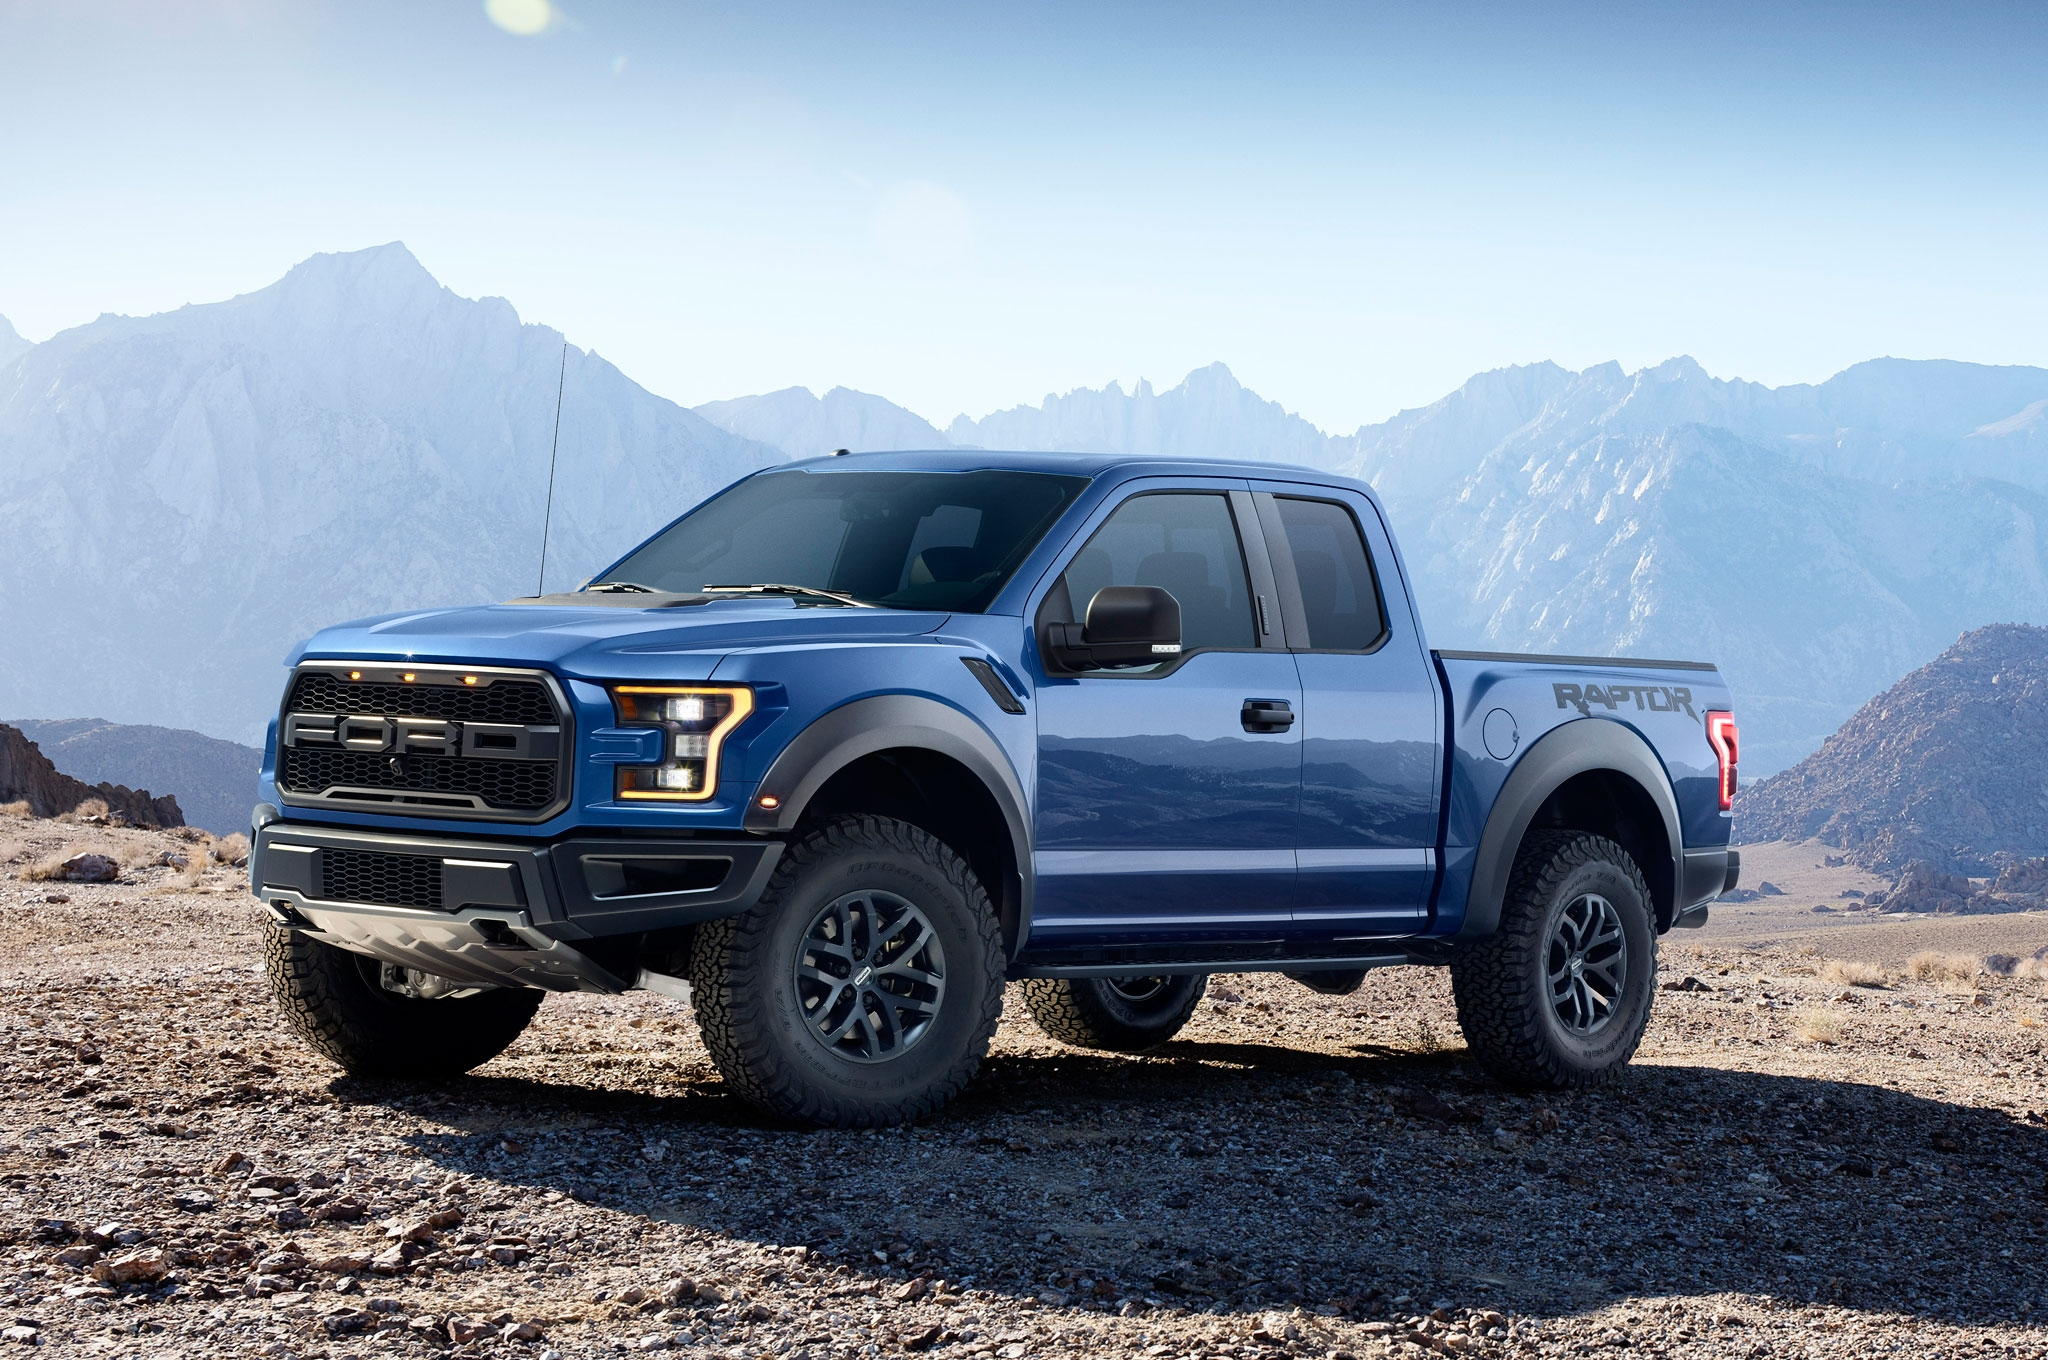 2017 Ford Raptor - Twin Turbo EcoBoost V6